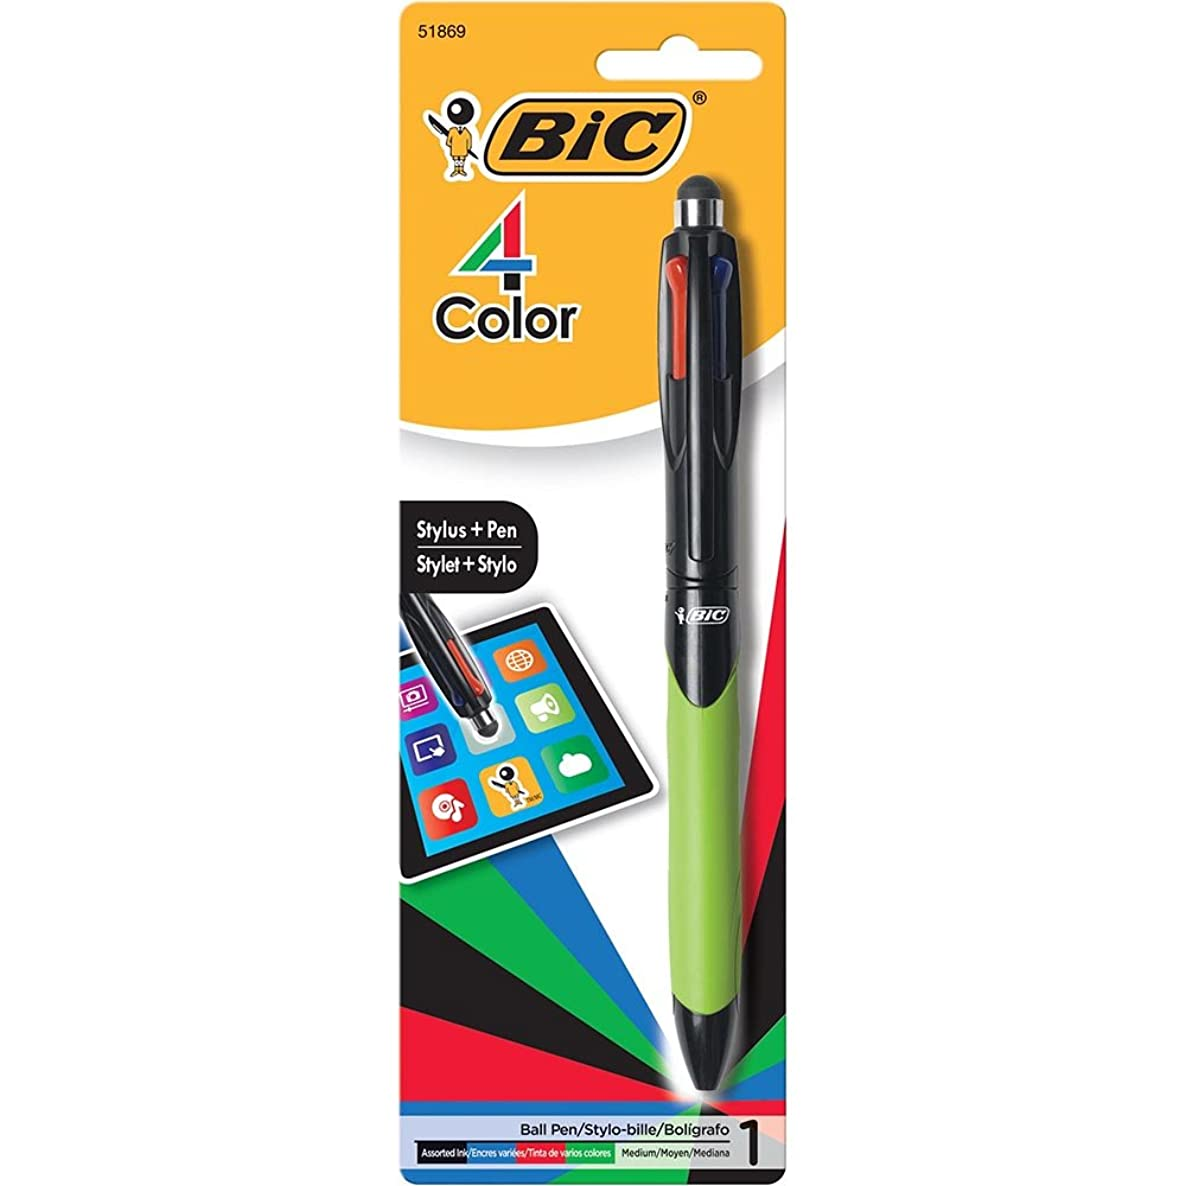 BIC 4-Color Grip Ballpoint Pen with Stylus, Medium Point (1.0mm), Assorted Inks, 1-Count